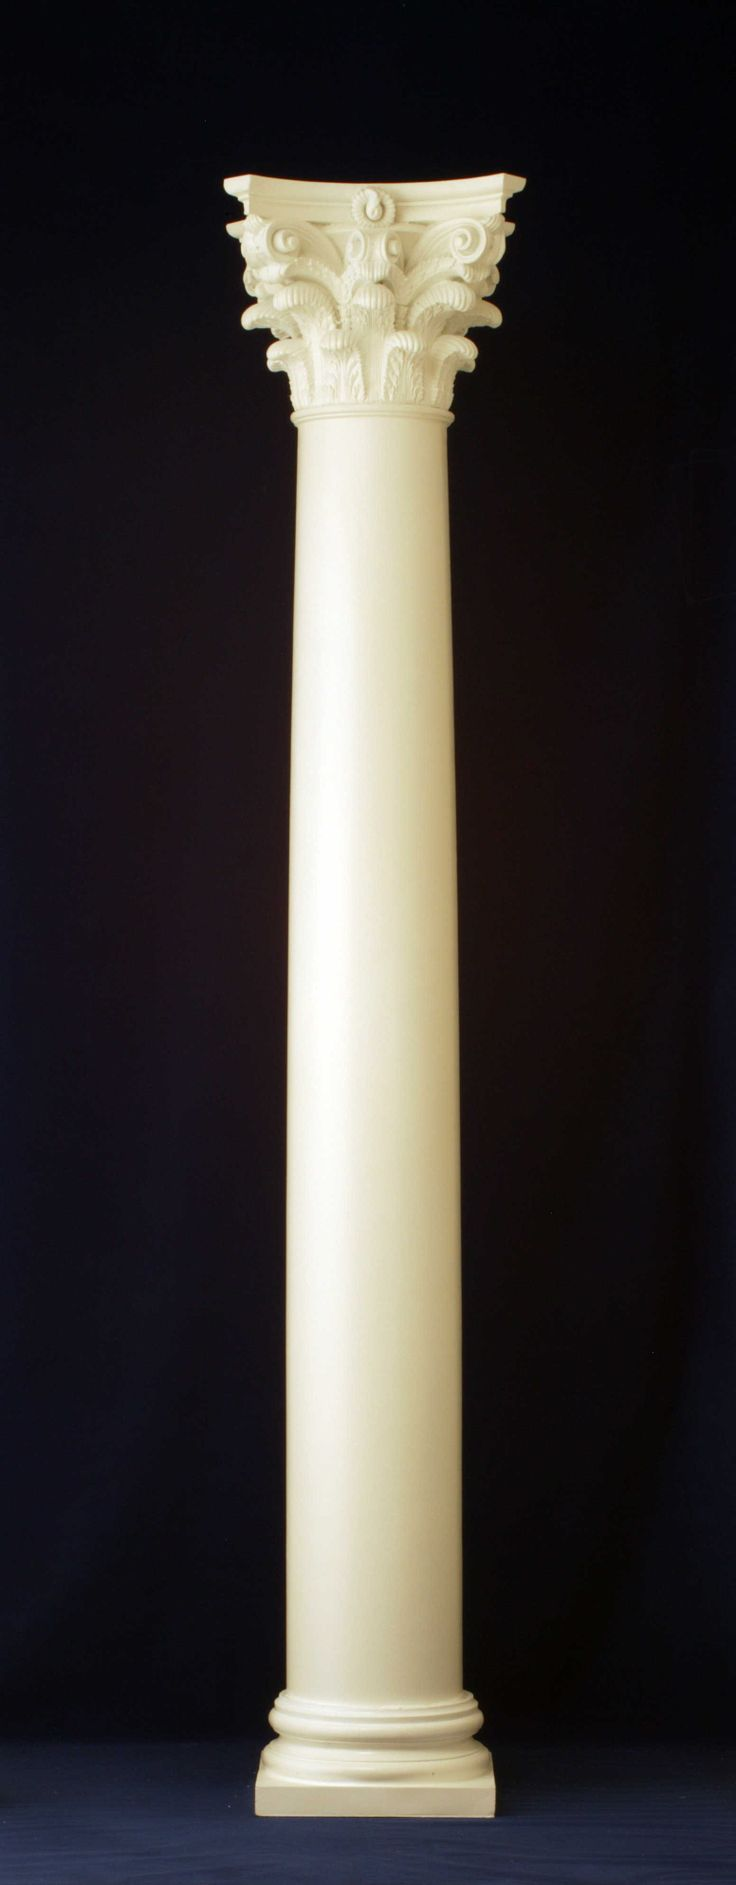 Fiberglass Column Wraps : The best ideas about fiberglass columns on pinterest